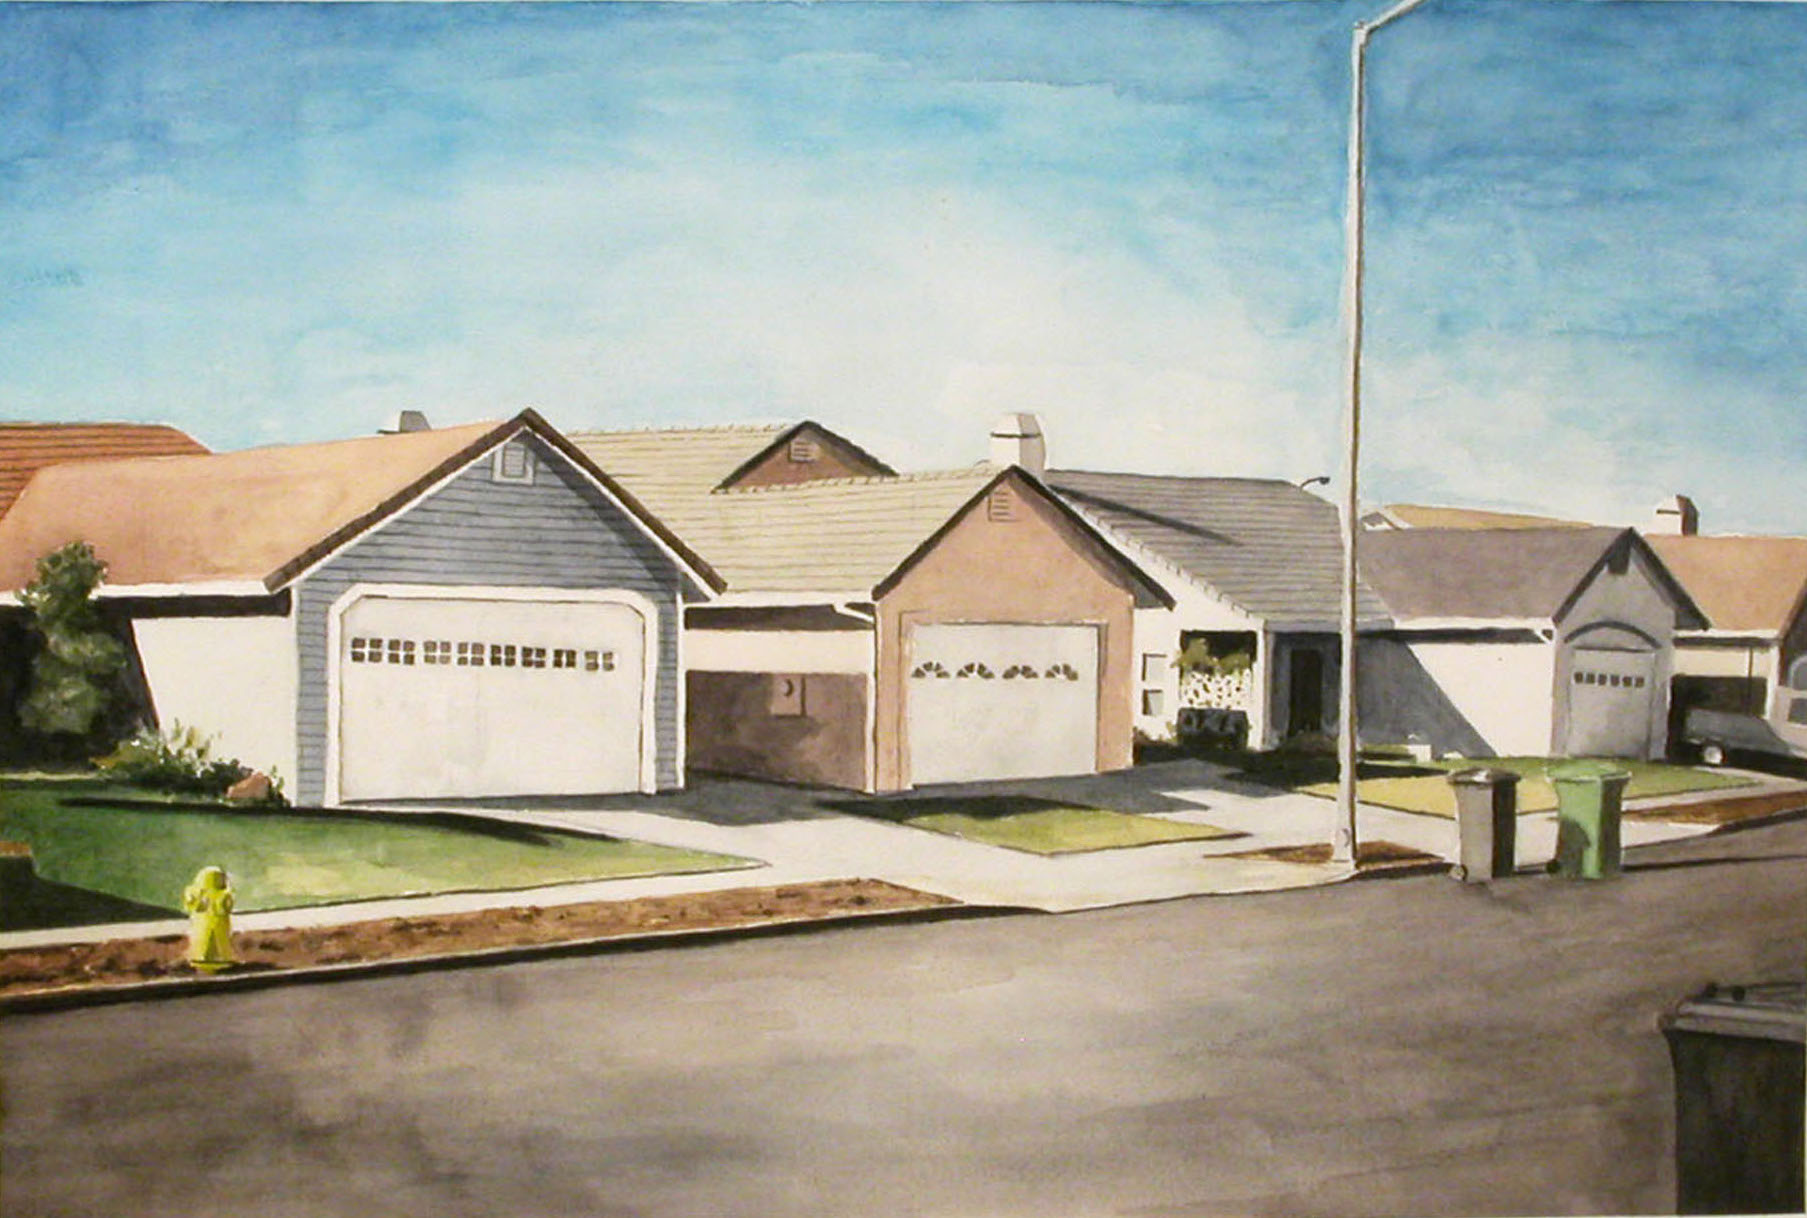 Suburban Street, 2002, watercolor, 14 x 21 in.